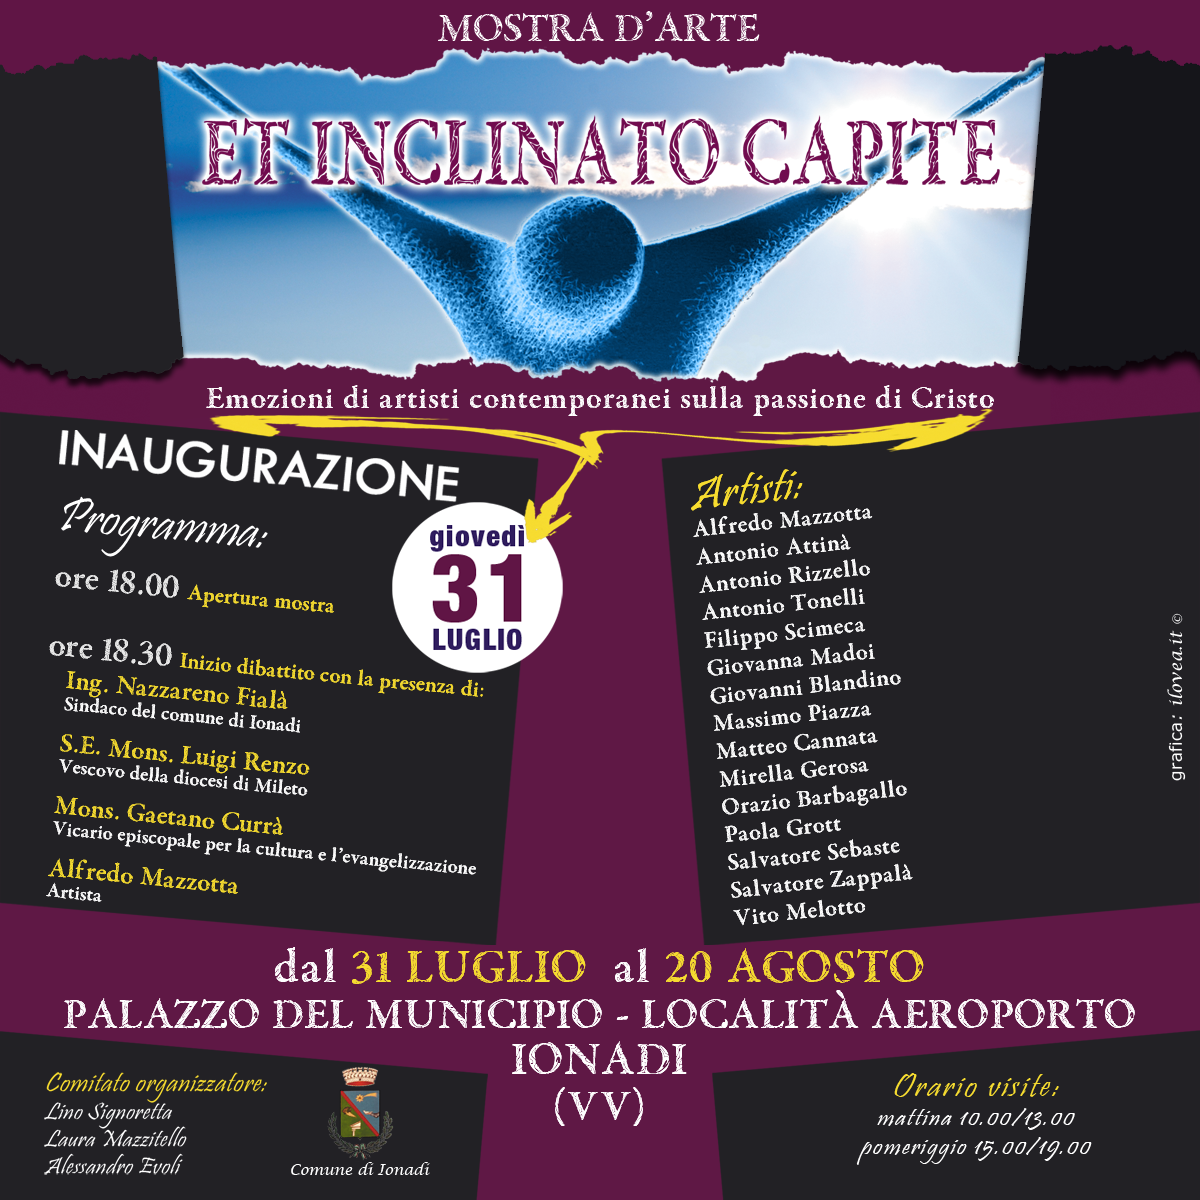 FLYER_ET_INCLINATO_CAPITE